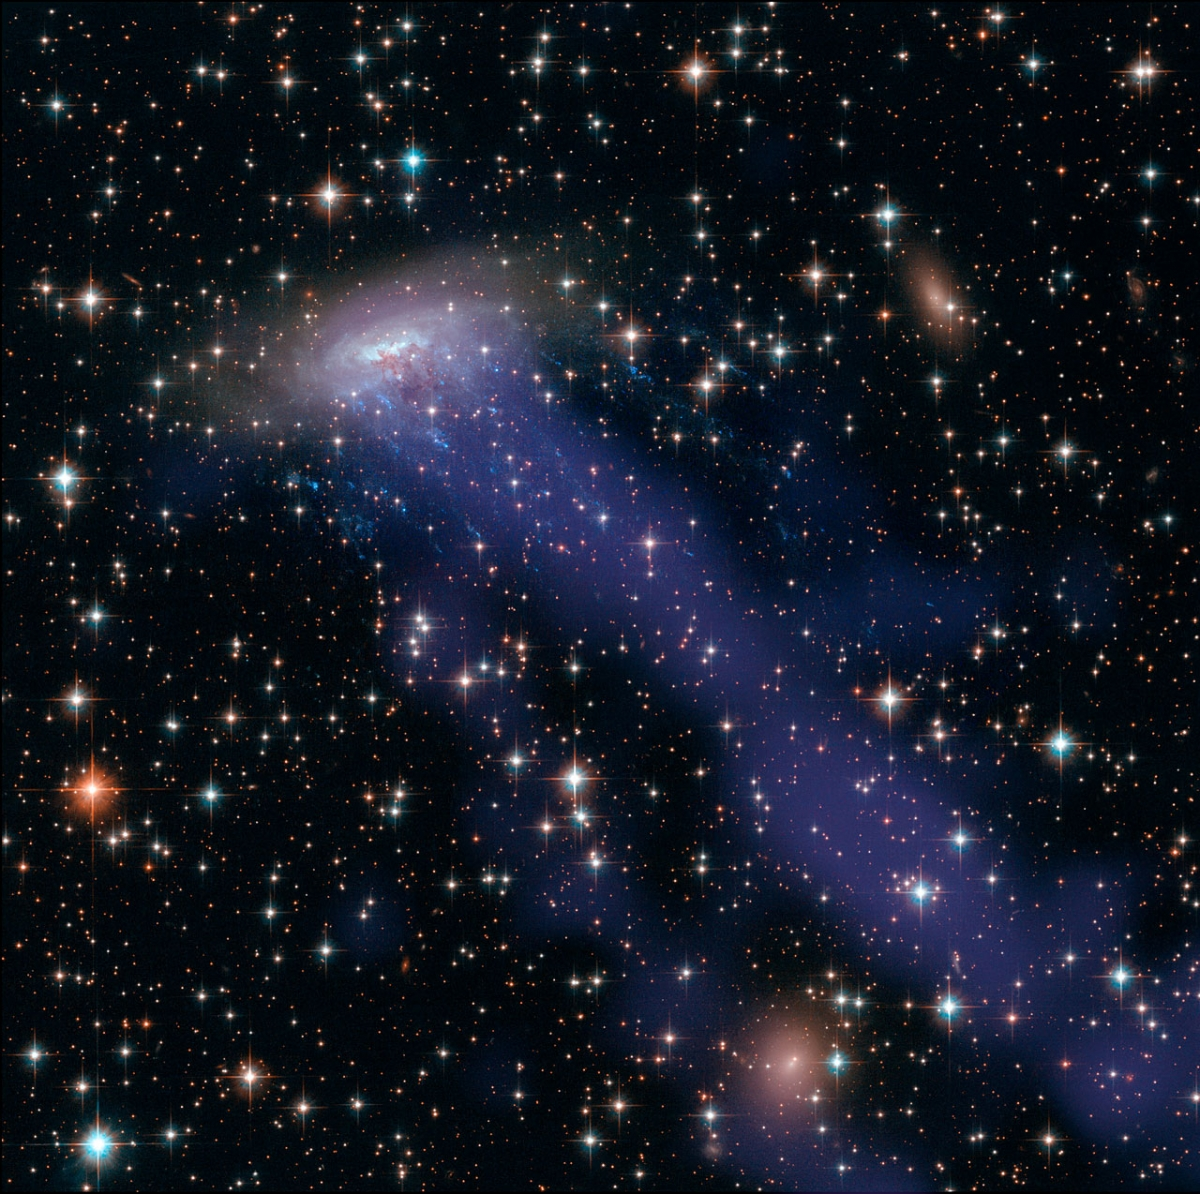 Hubble image ESO 137-001 galaxy being destroyed